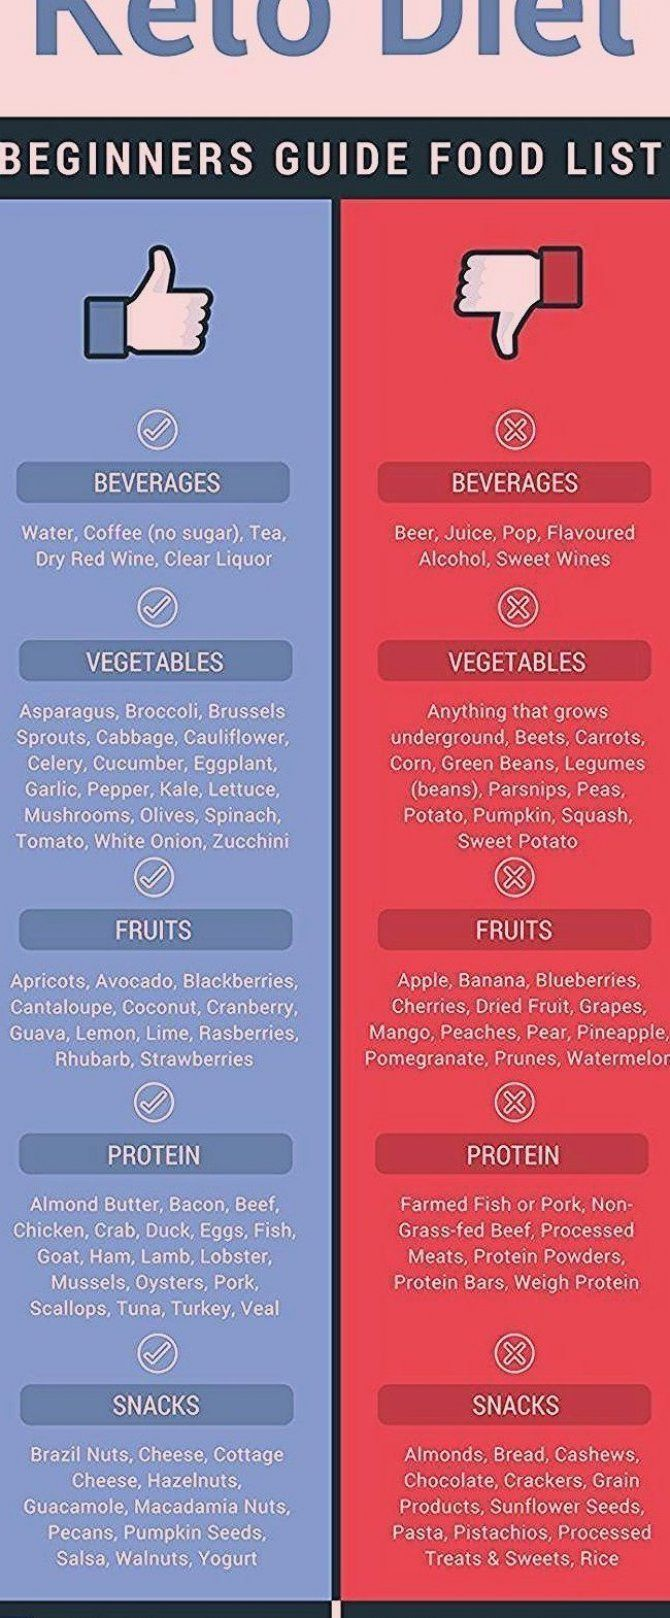 Ketodiet Keto Diet For Beginners Food Lists Keto Diet For Beginners In 2020 Ketogenic Diet For Beginners Diet Recipes Flat Belly Keto Diet